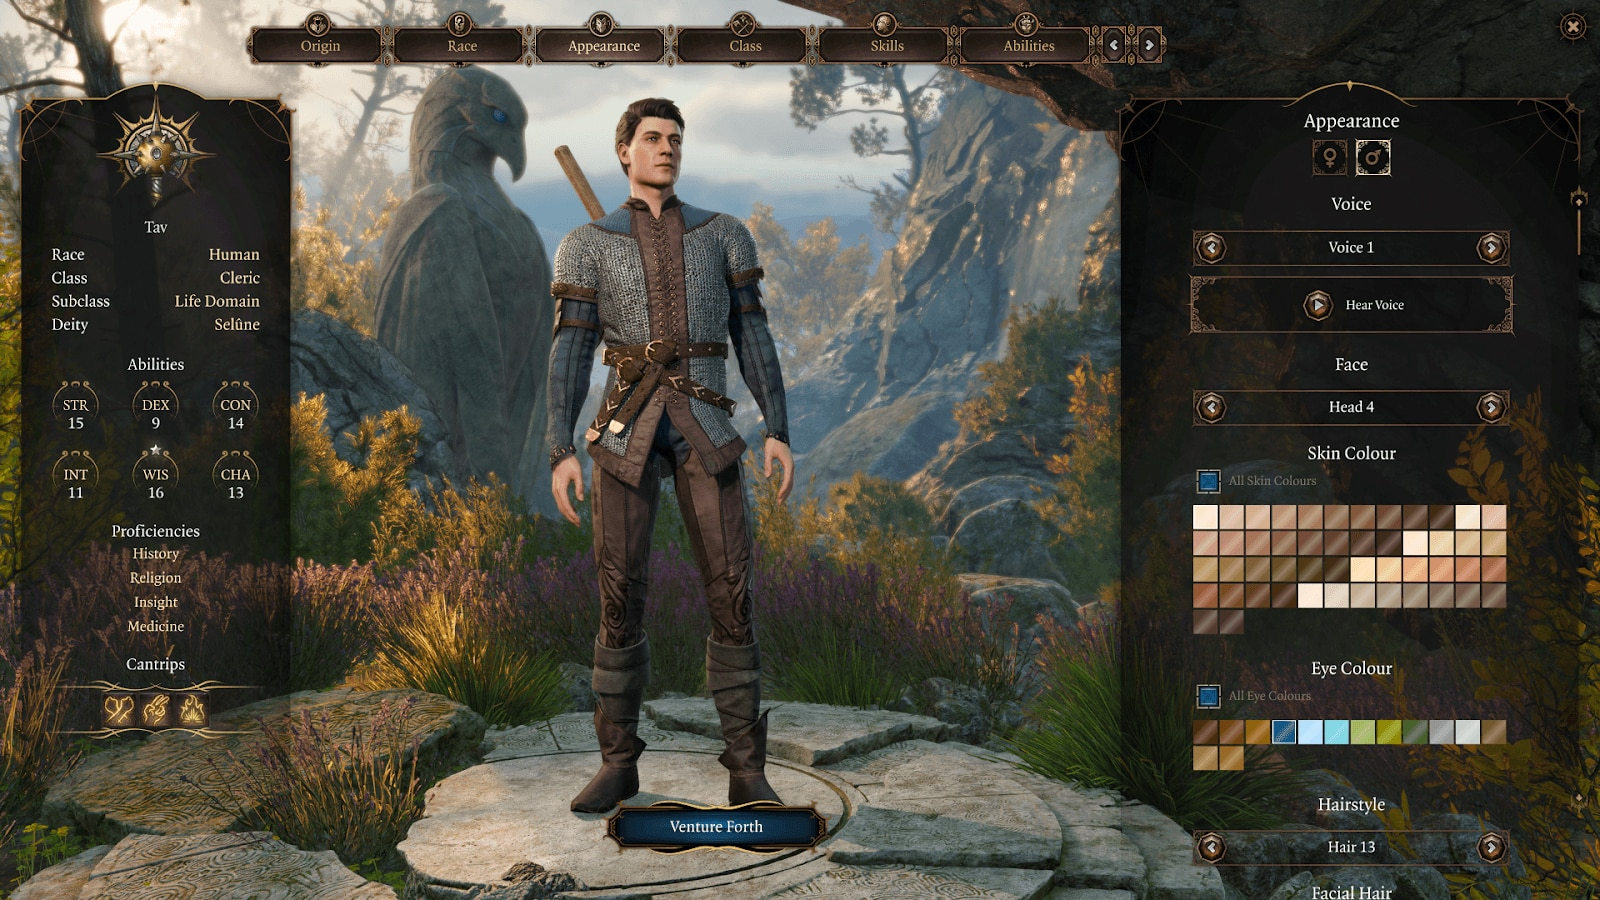 Baldur's Gate 3 Prides Itself on Customization, so Let's Get Black Hair Options Right This Time